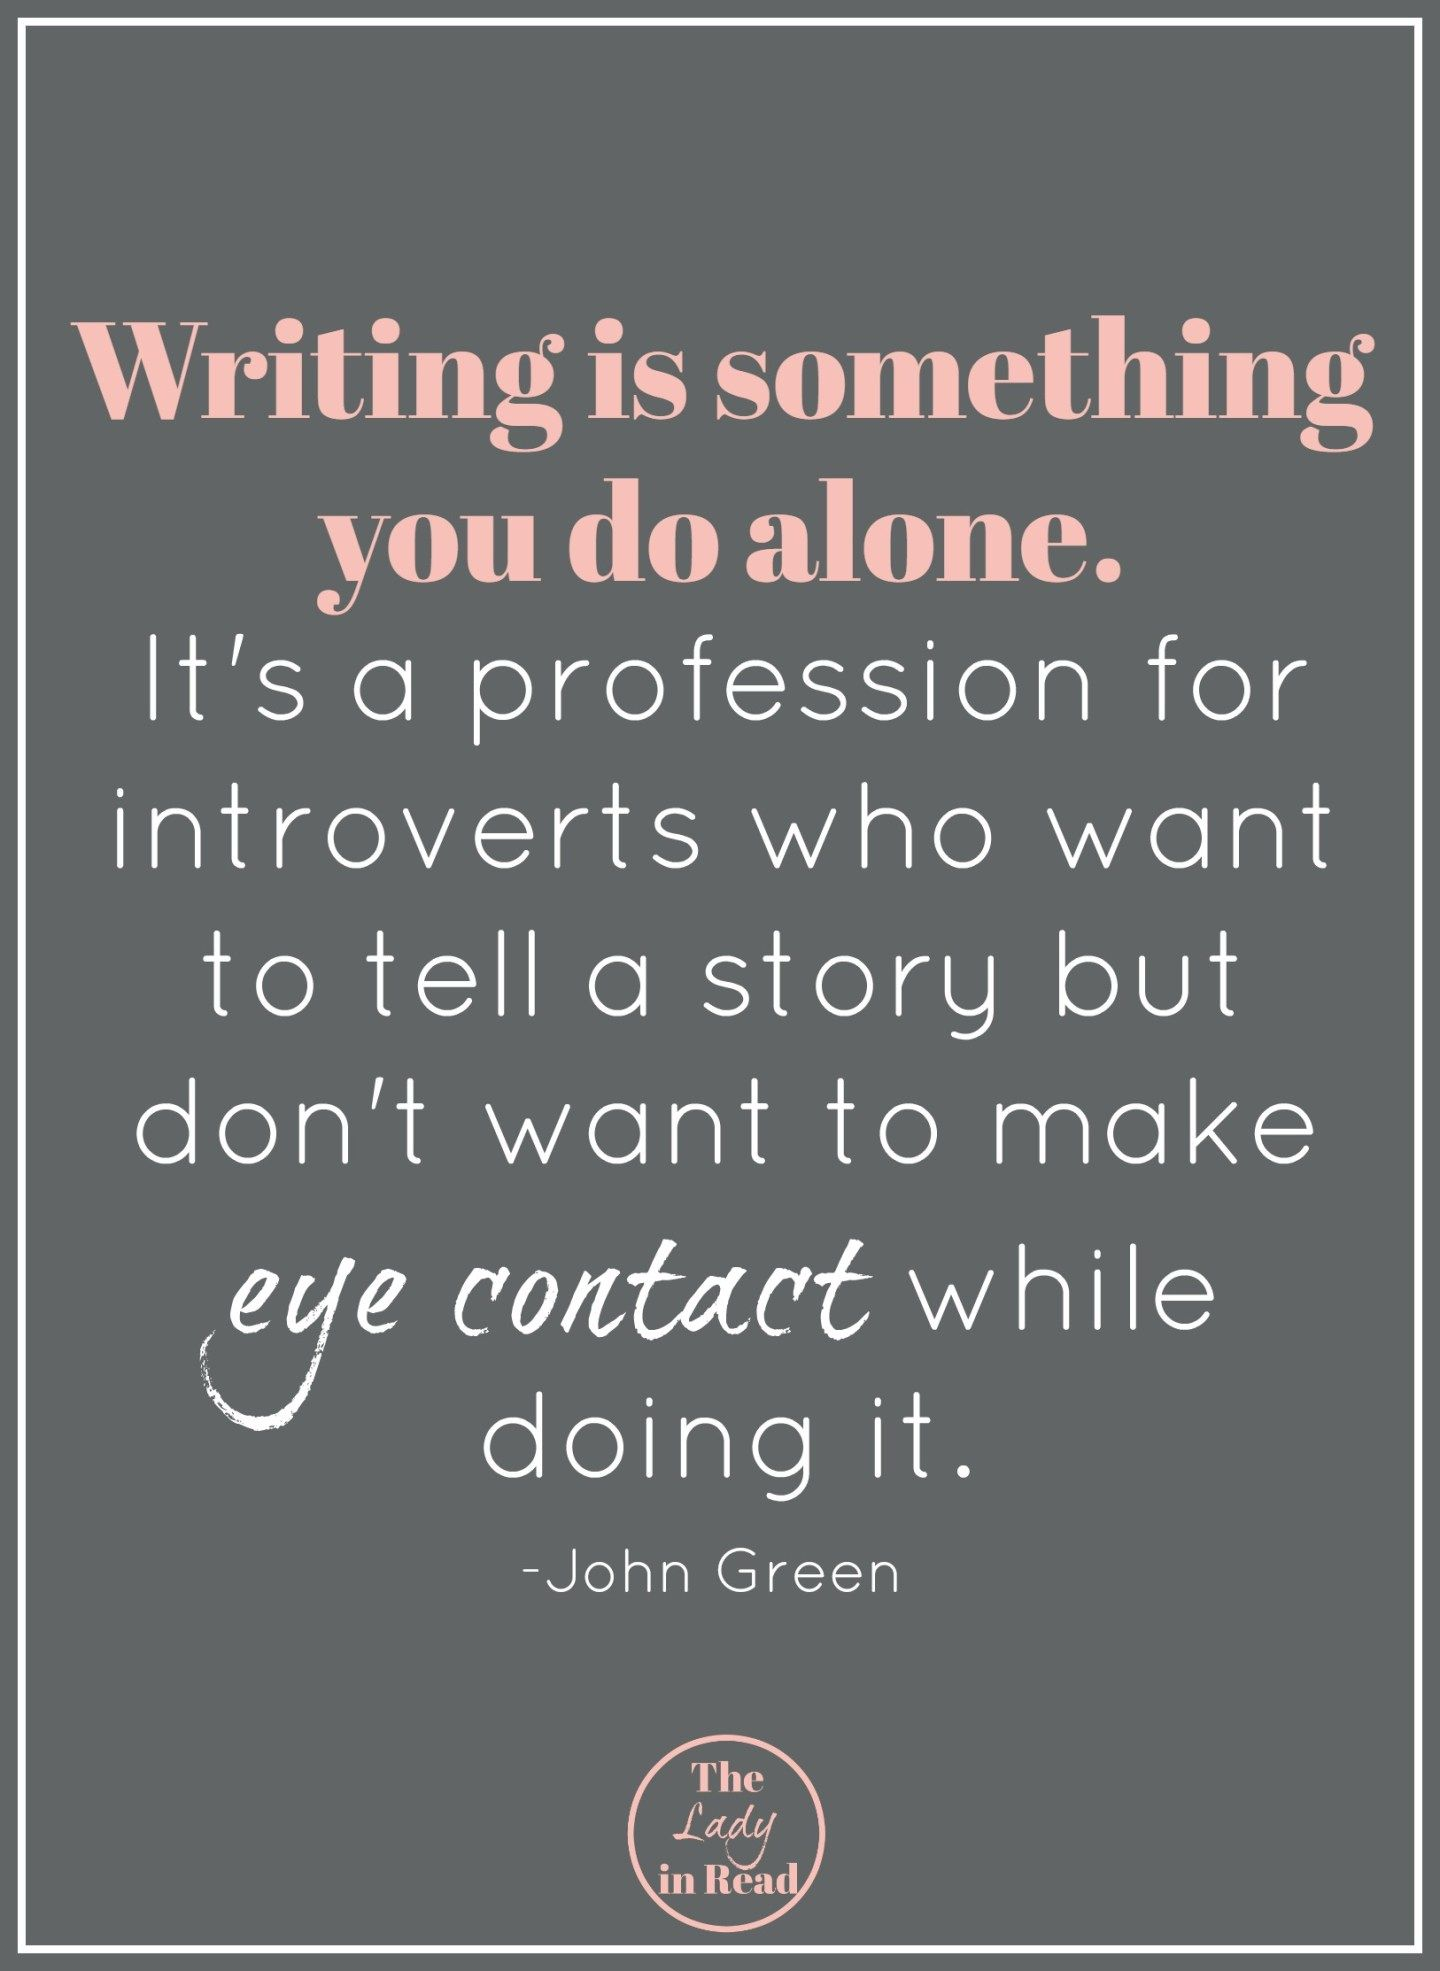 20 beyond-true quotes about writing | writers, promote yourself